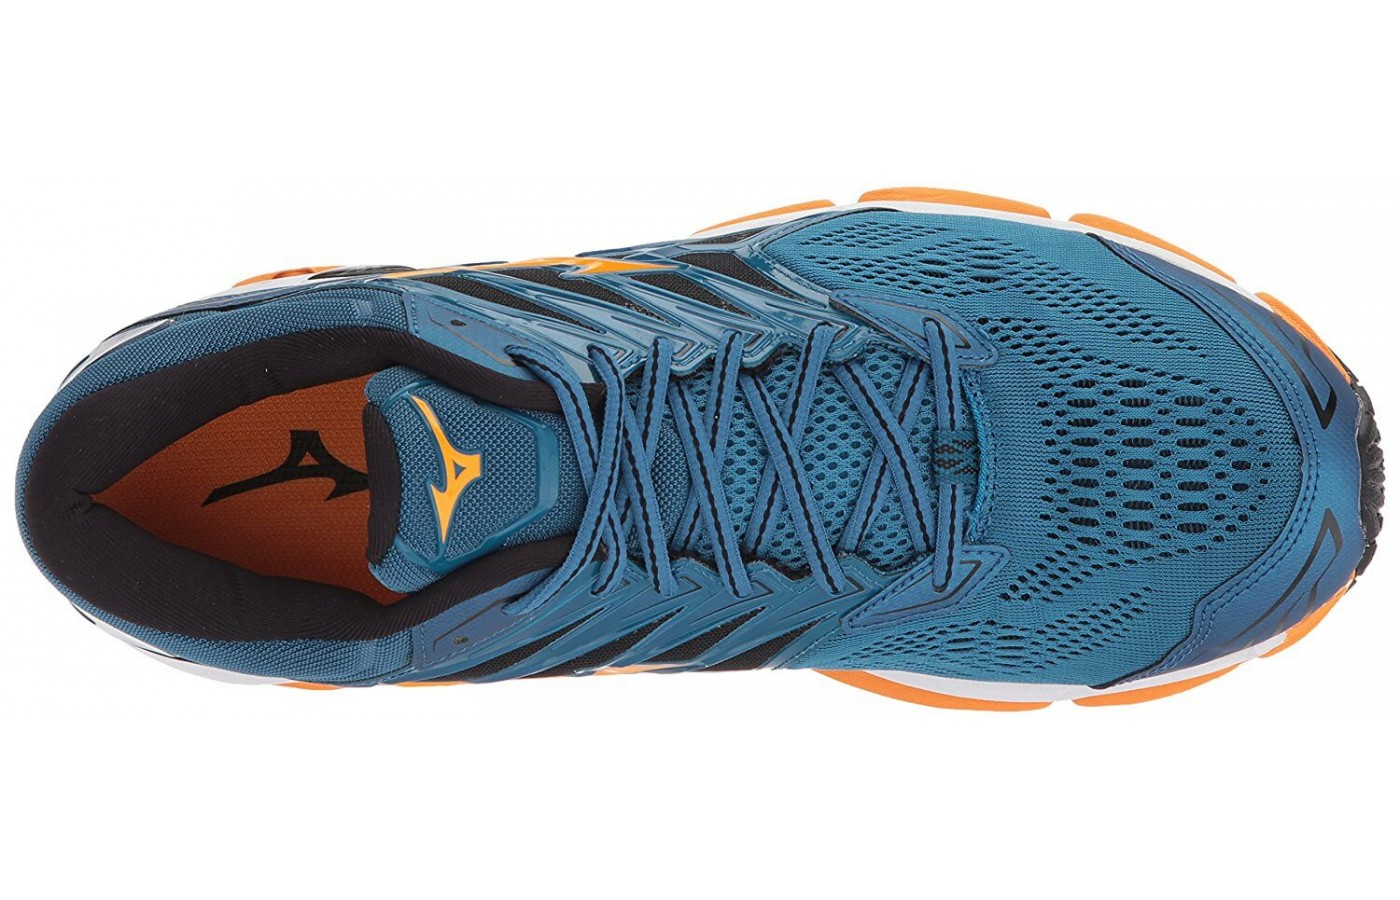 The Mizuno Wave Horizon 2 has a 12mm drop